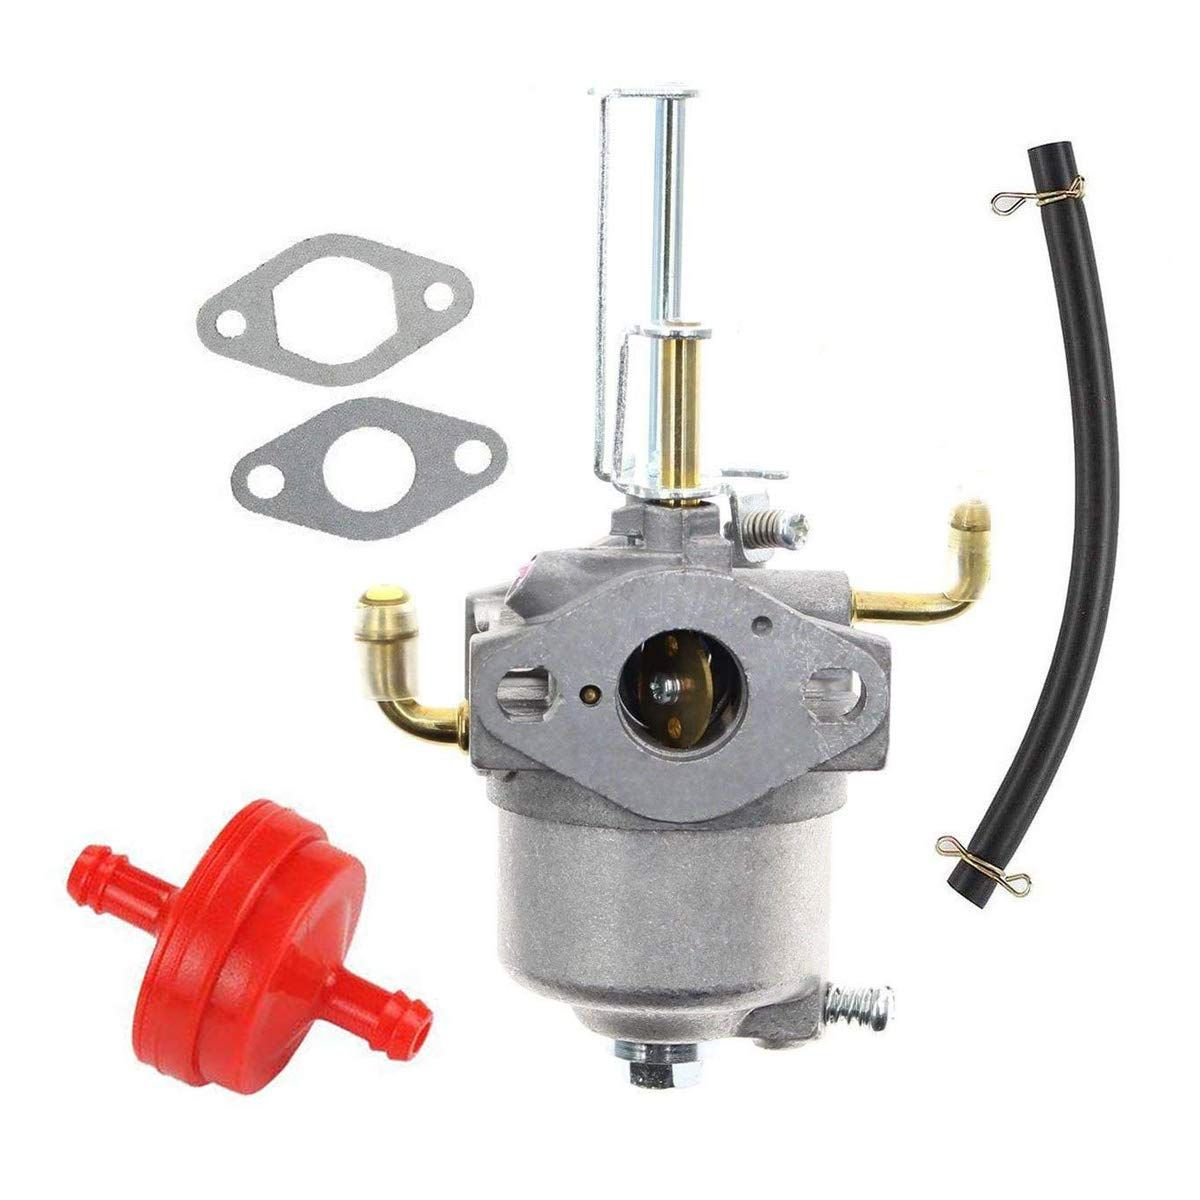 hight resolution of hqparts carburetor carb and fuel filter for carburetor for toro 38587 38272 38282 38452 snow blower